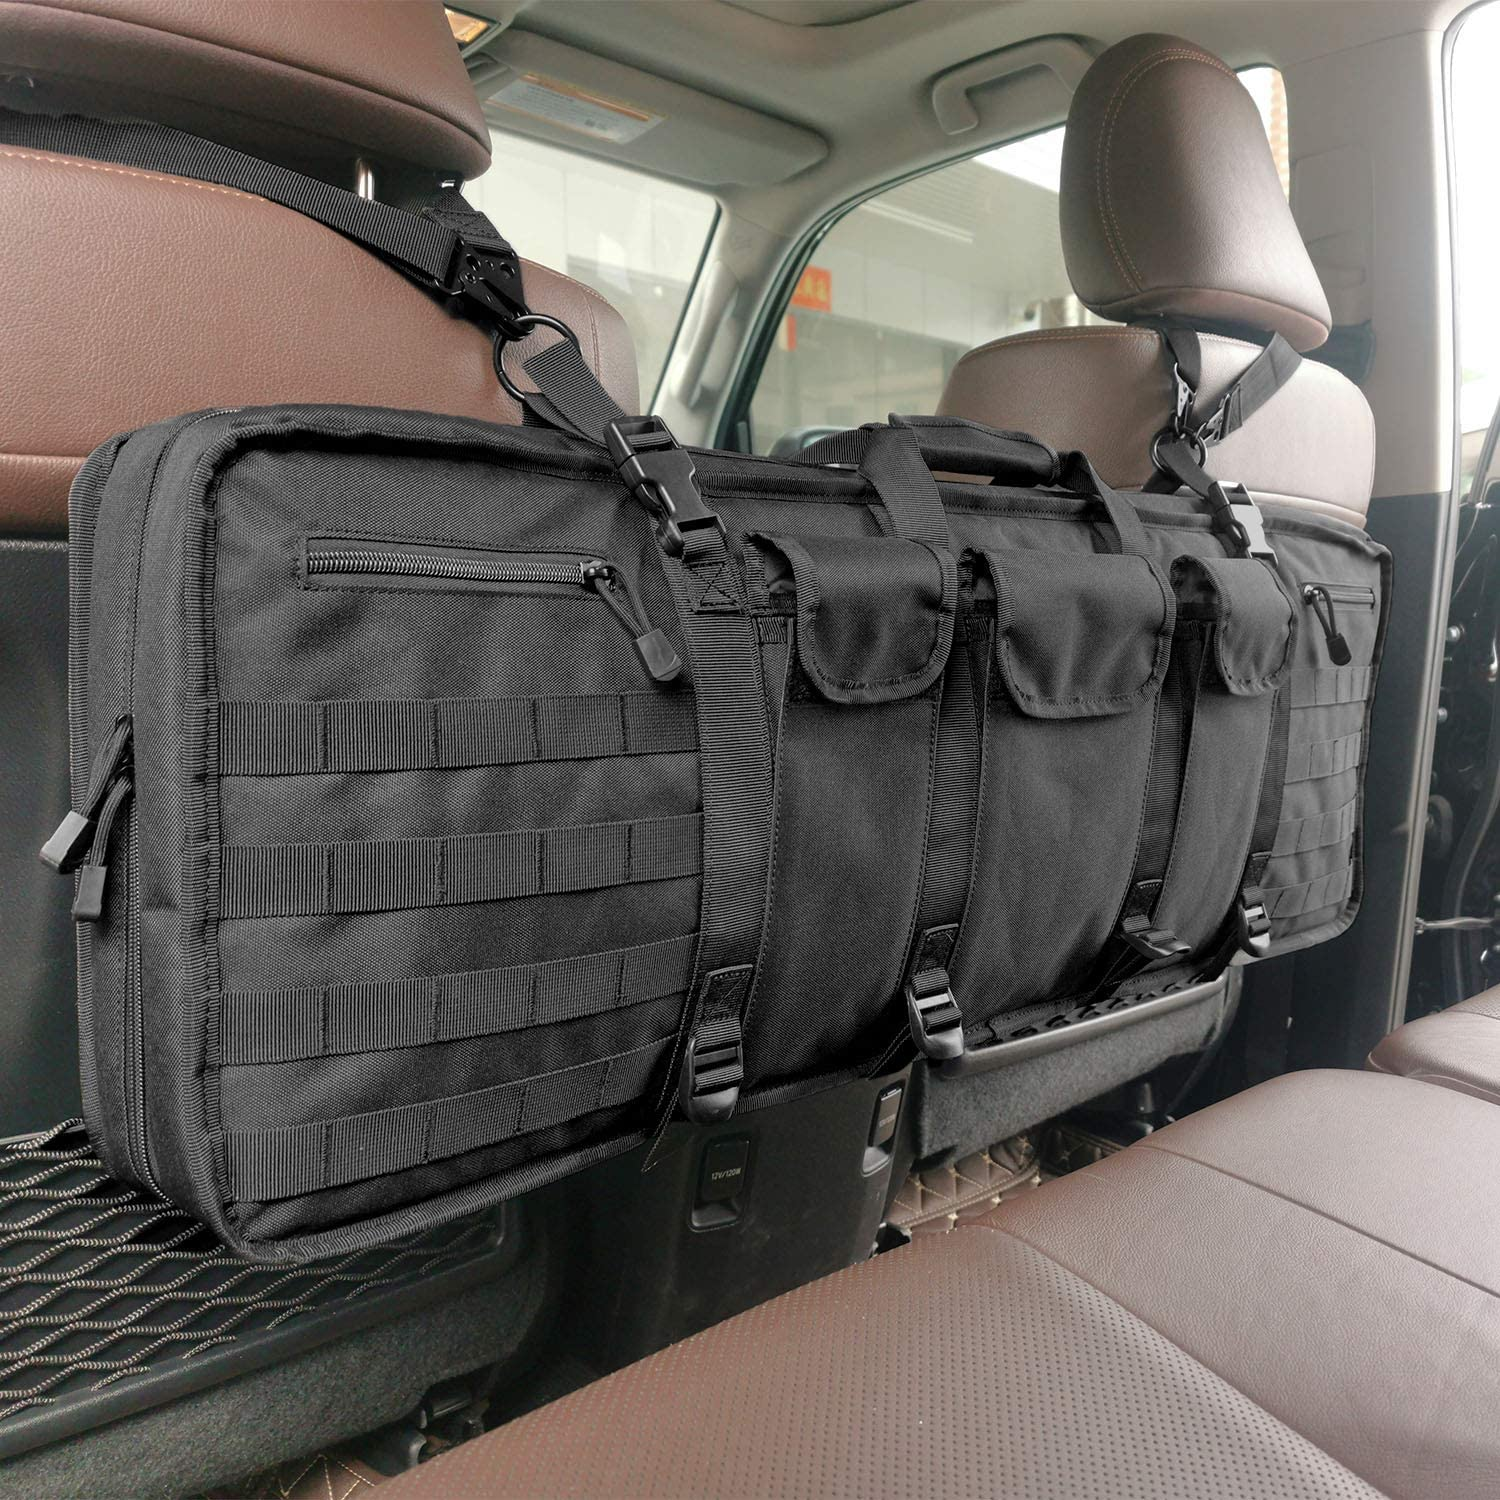 Yawayda Ranking TOP6 36 Ranking TOP20 Inch Tactical Rifle Bag Double Lockable Soft Long and